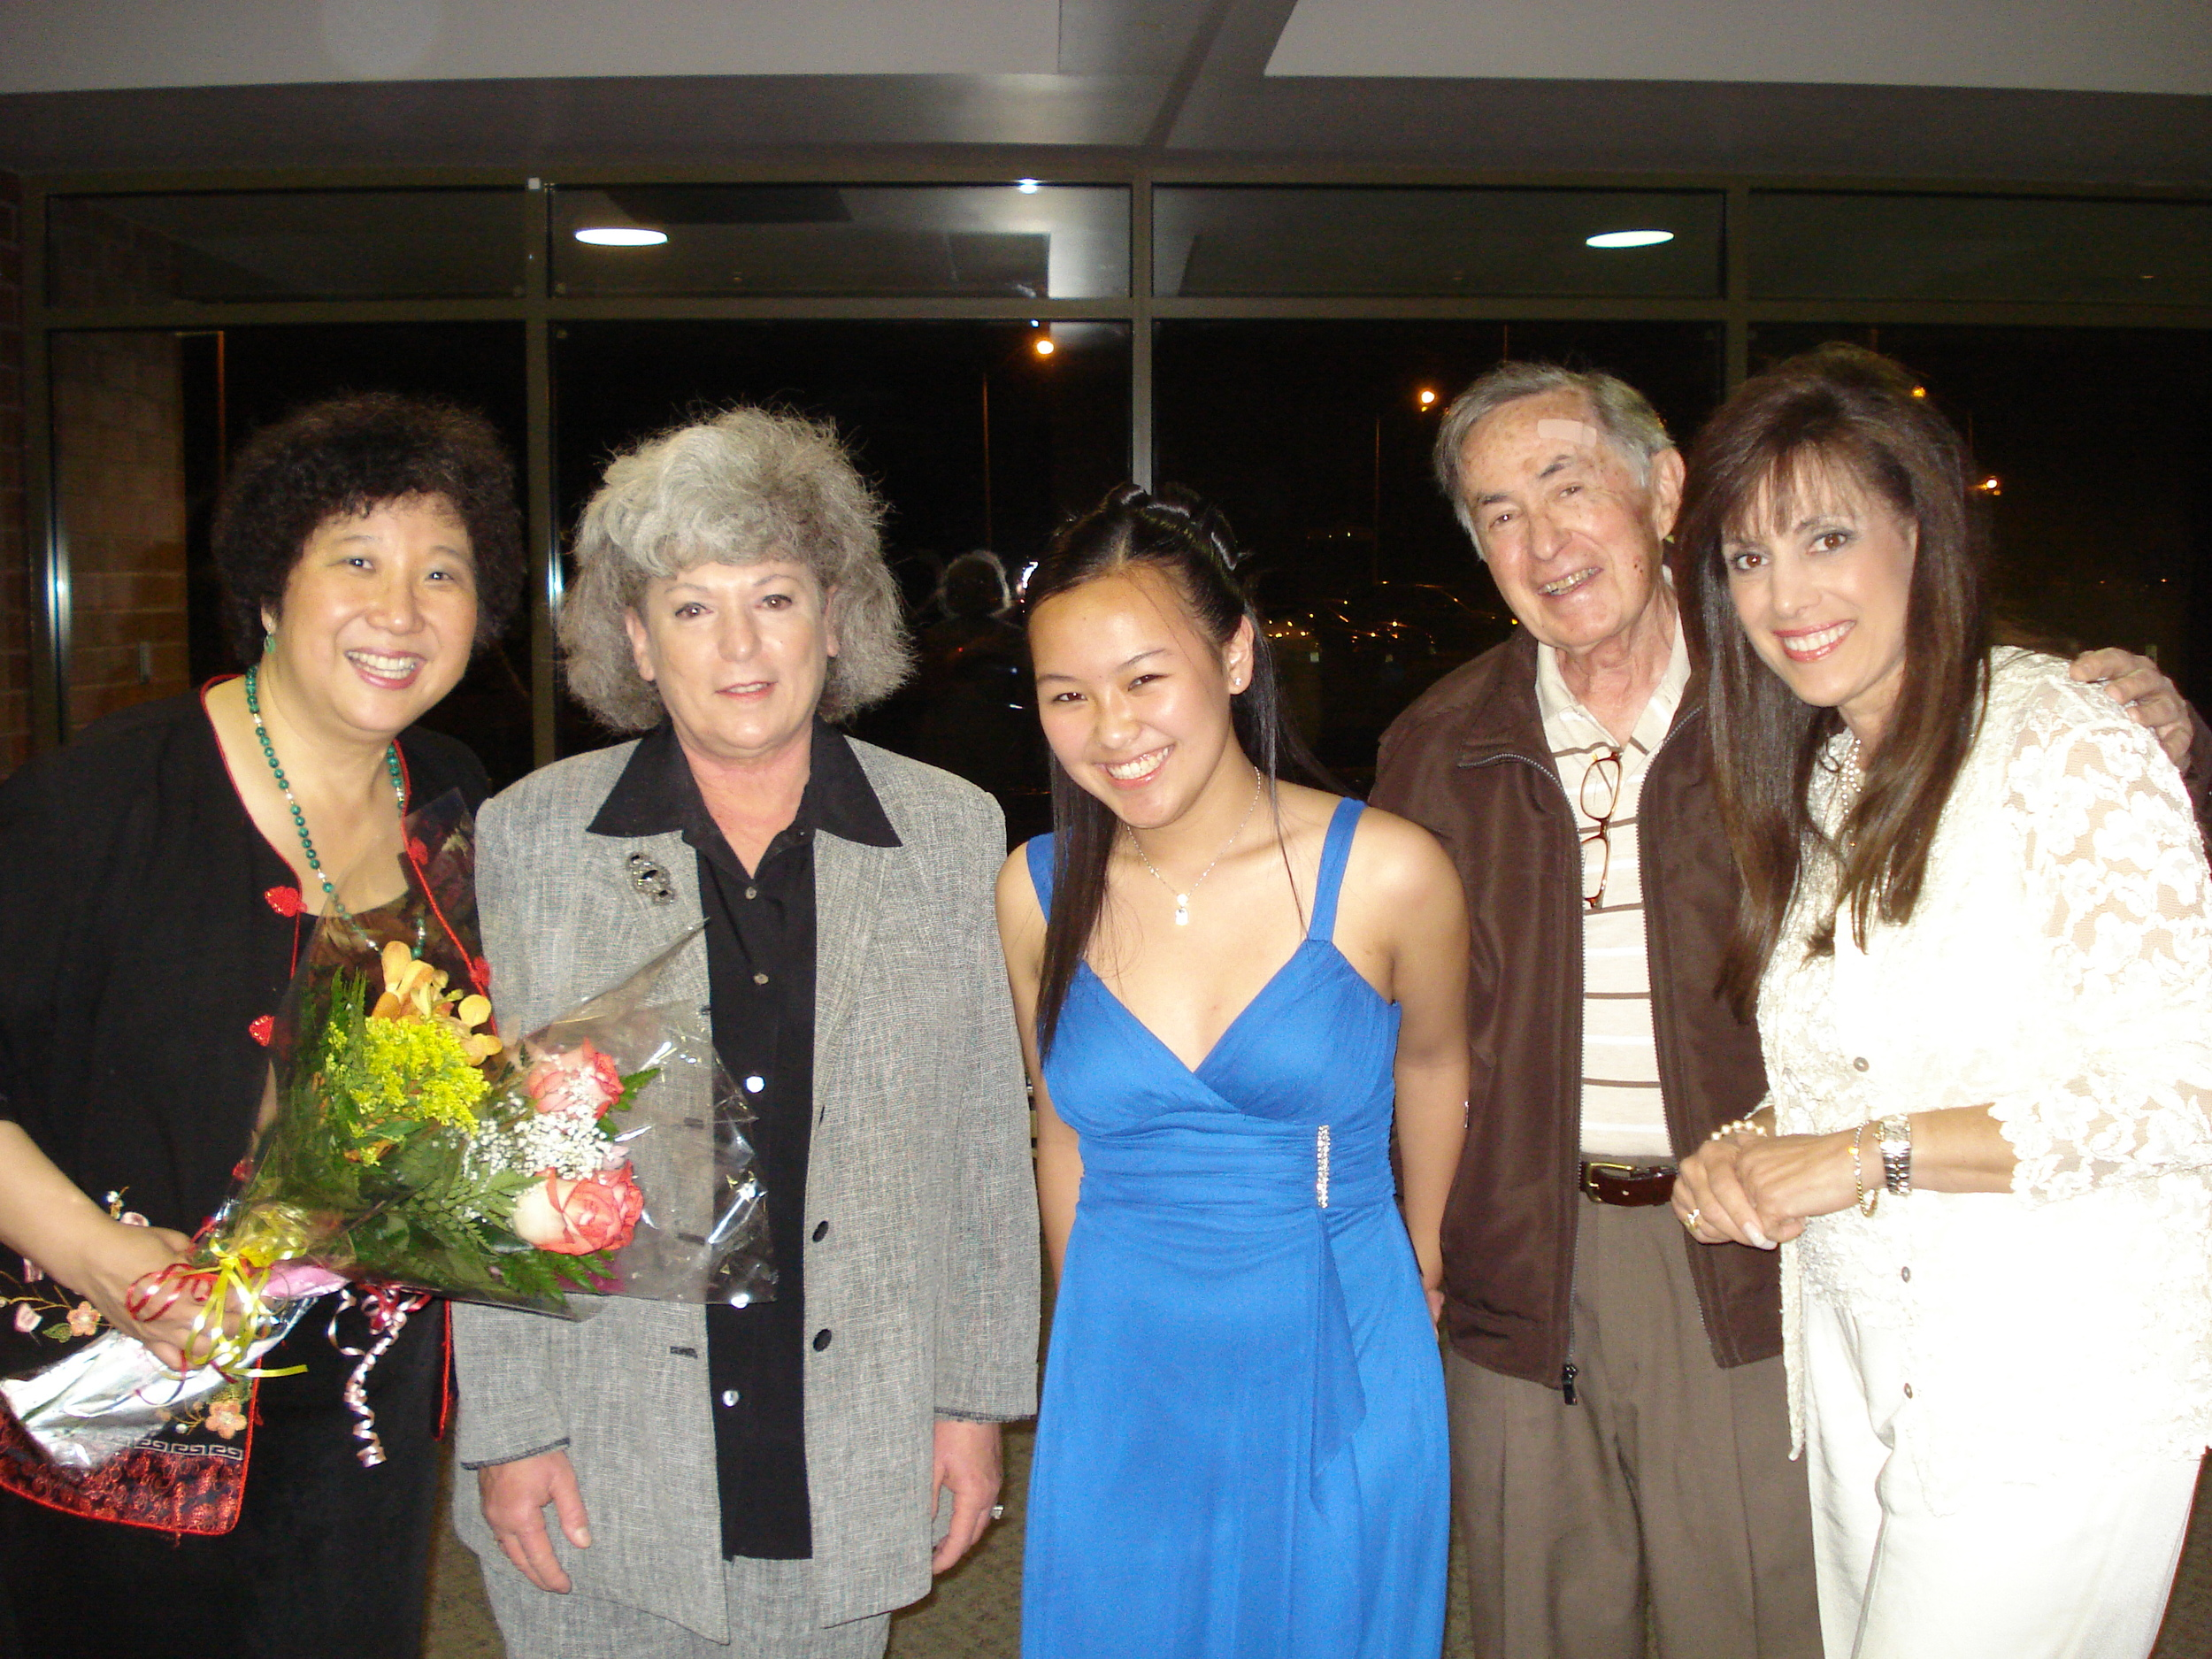 Maestra Lin, Clarinetist Amy Zhang with members of the Monroe Township Arts Commision